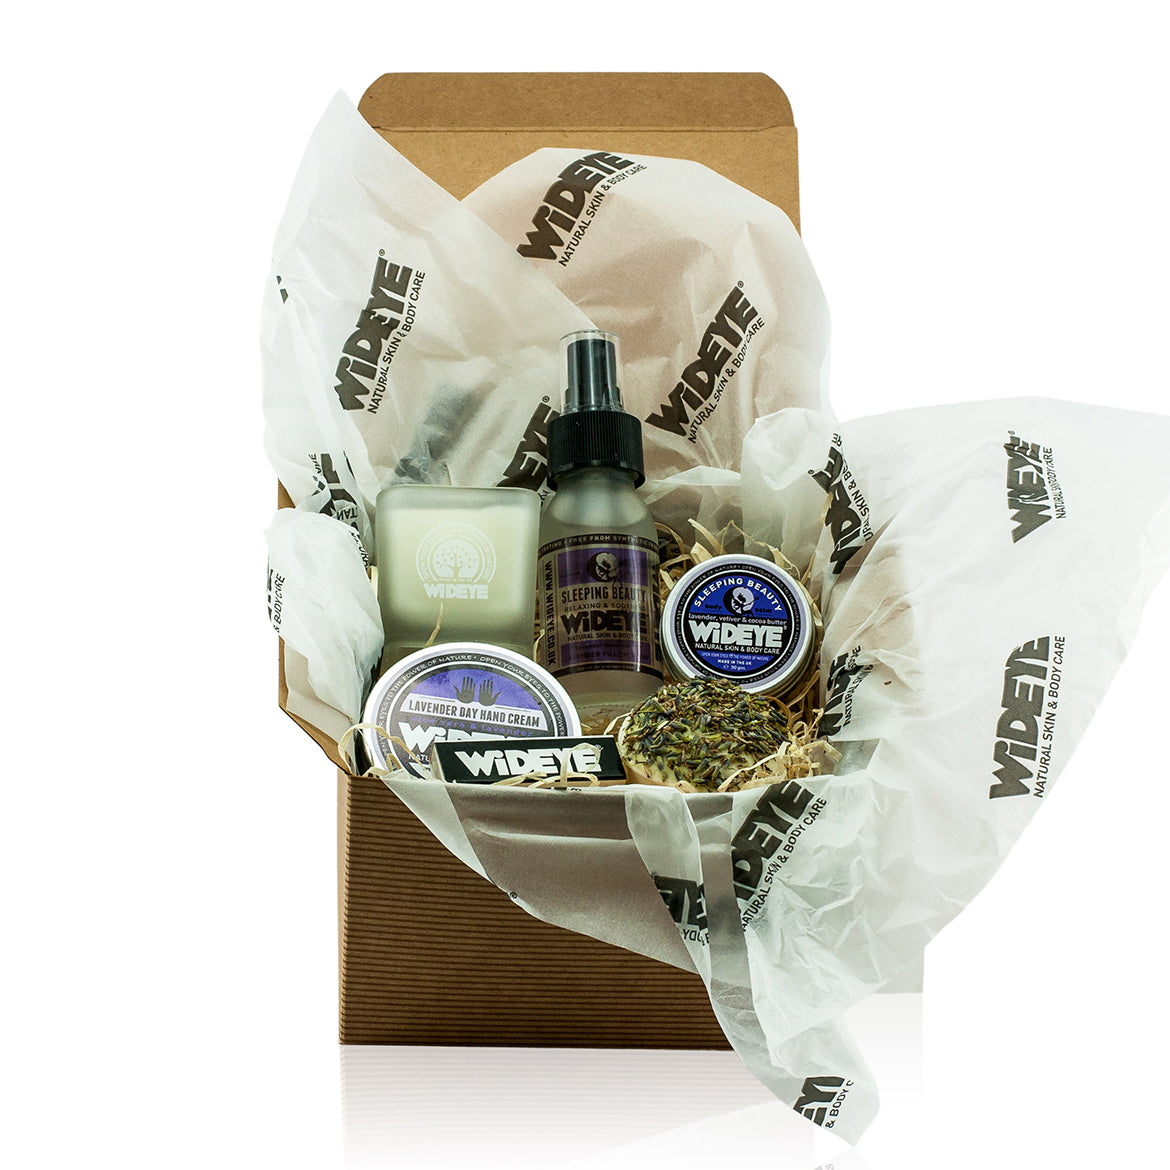 Natural vegan skincare 'Sleeping Beauty' luxury gift box with active balm, lavender pillow spray, buttercup bath melt, hand cream and soy wax candle. Handmade by WiDEYE in Rye.